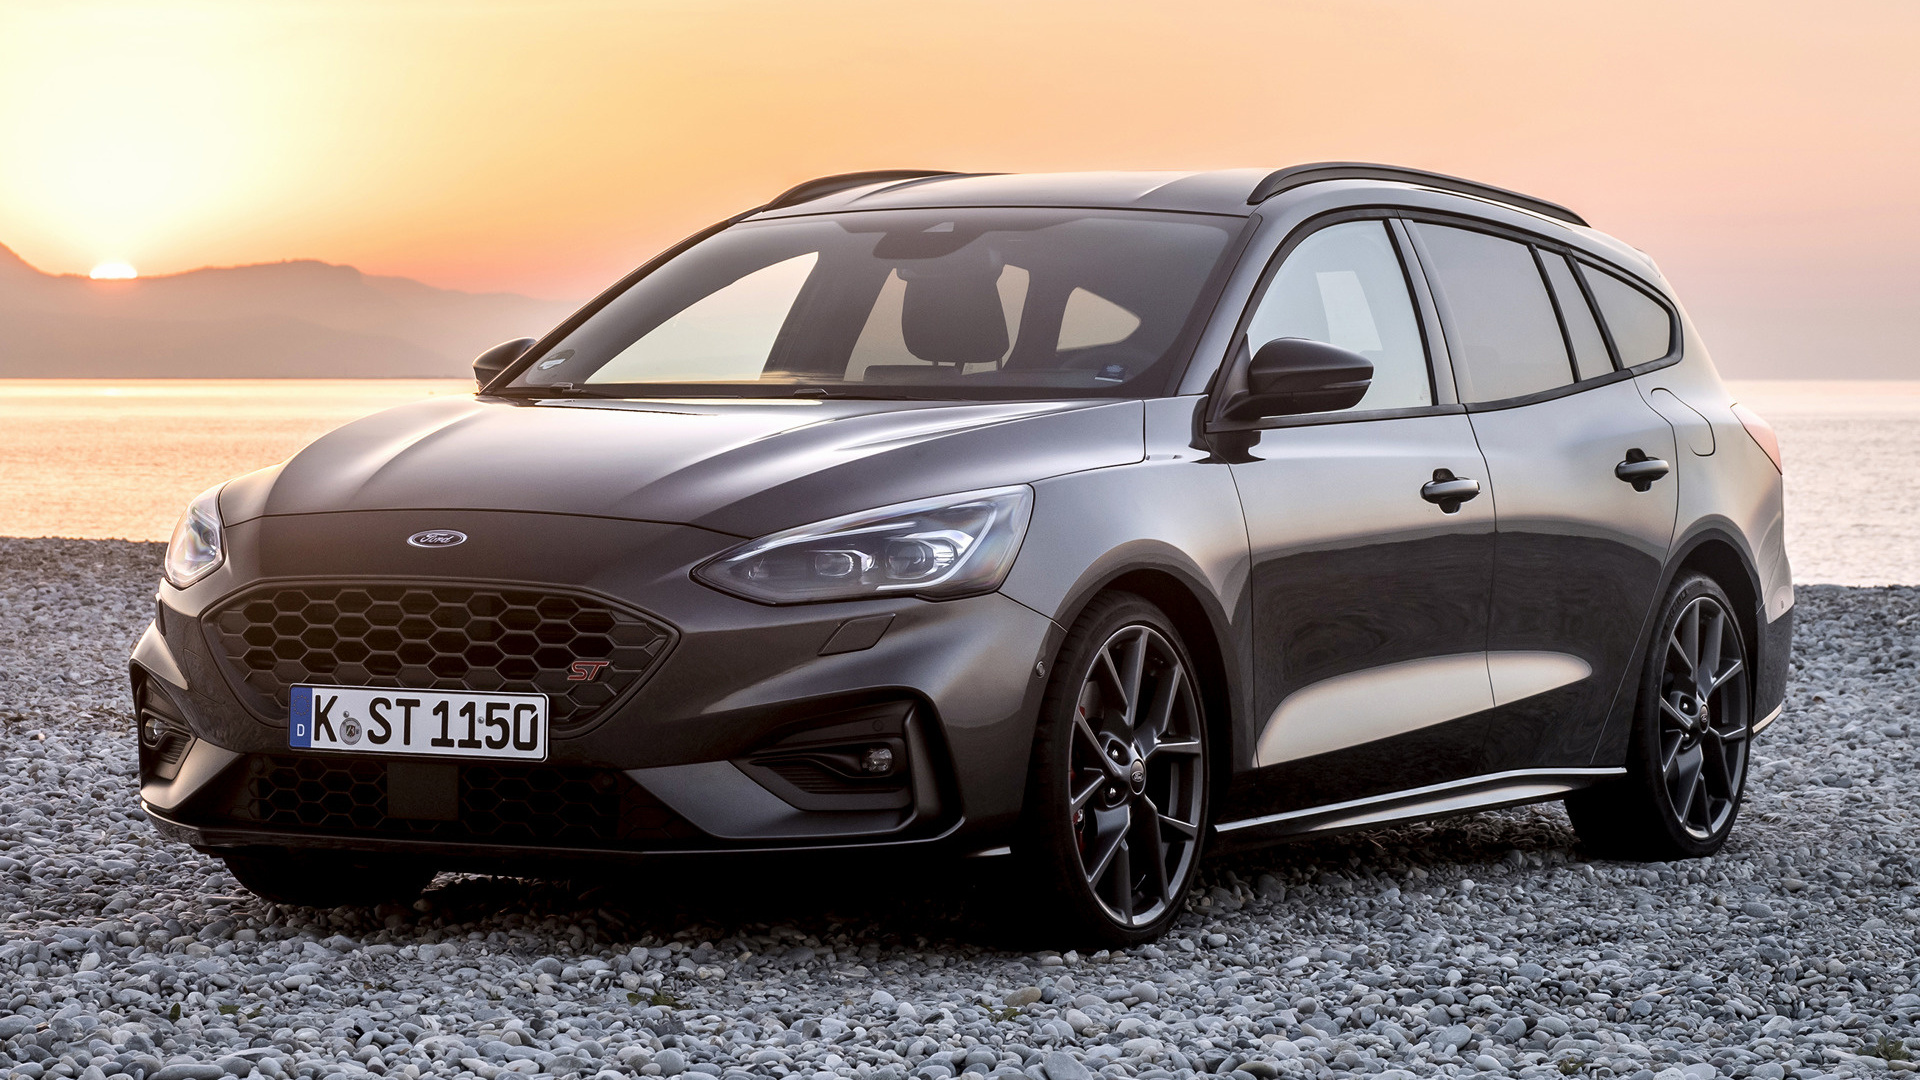 2019 ford focus st turnier wallpapers and hd images car